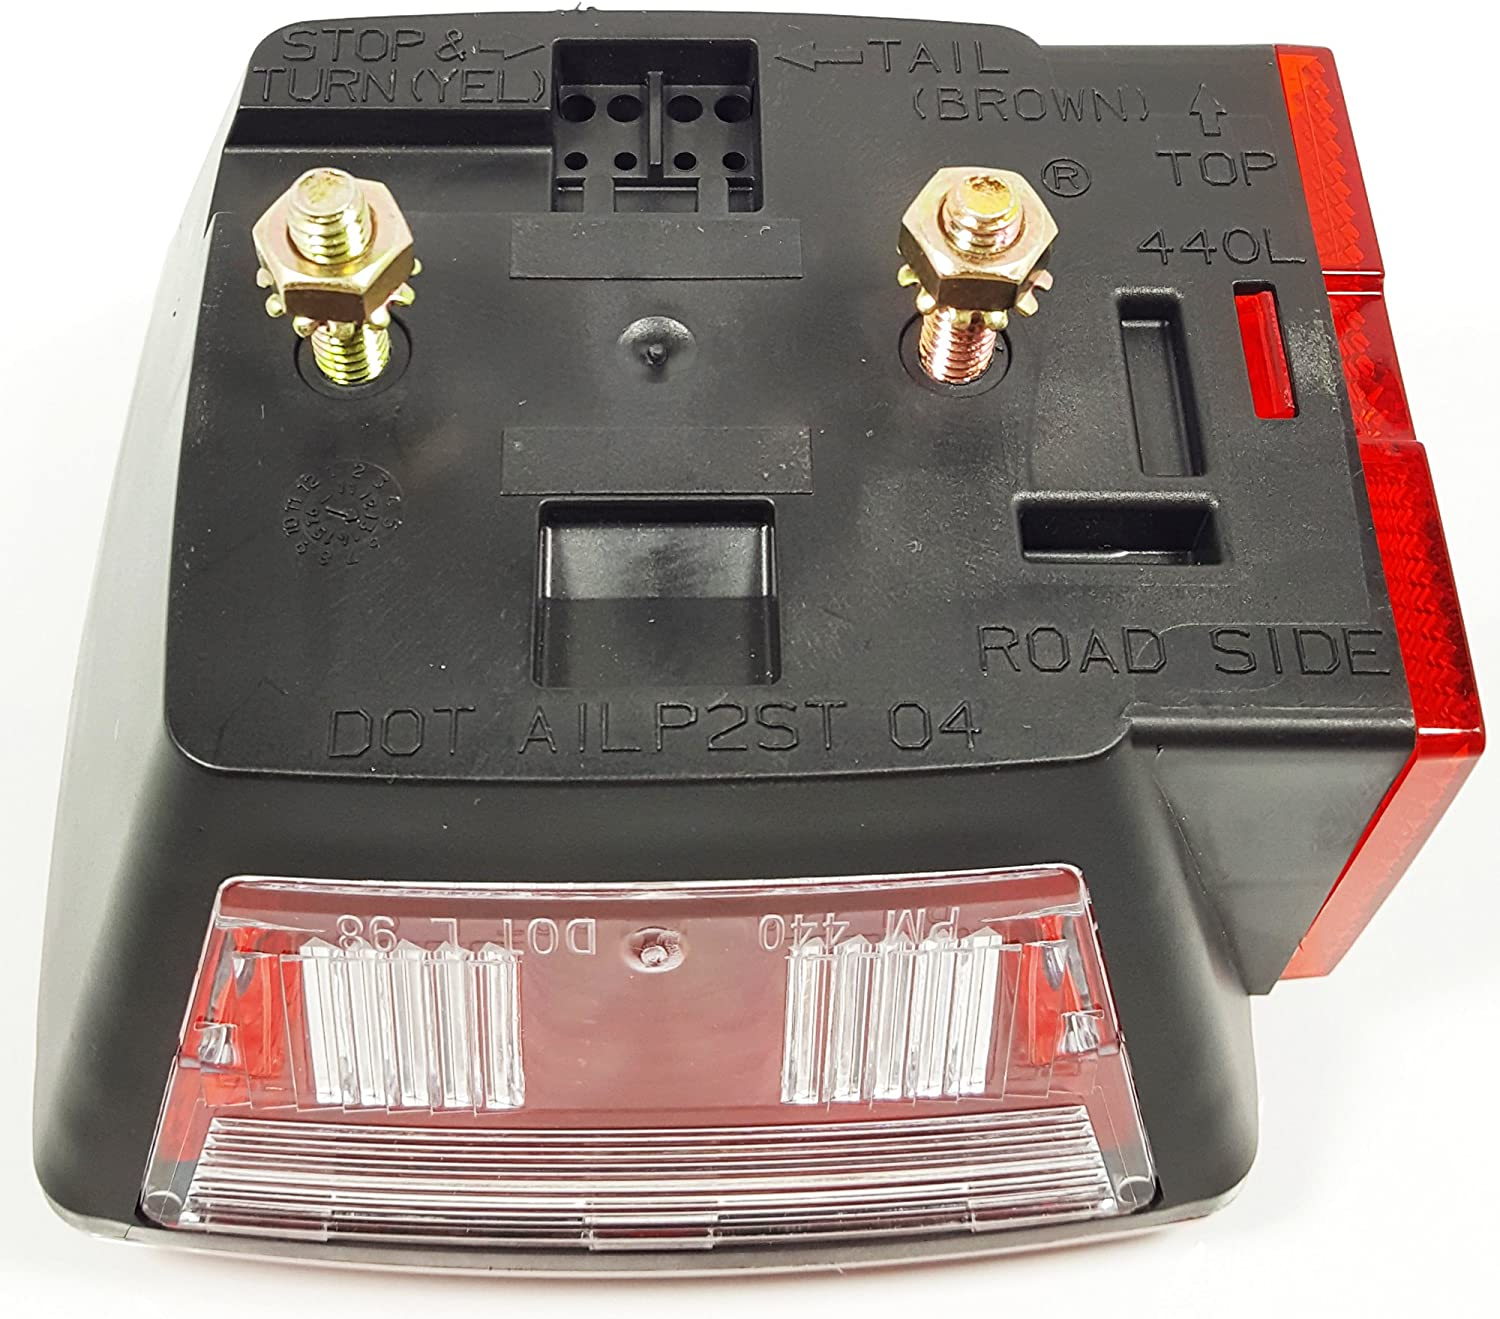 440 /& 440L Trailers Pair of Peterson Stop-Turn-Tail Lights for Trucks Rvs